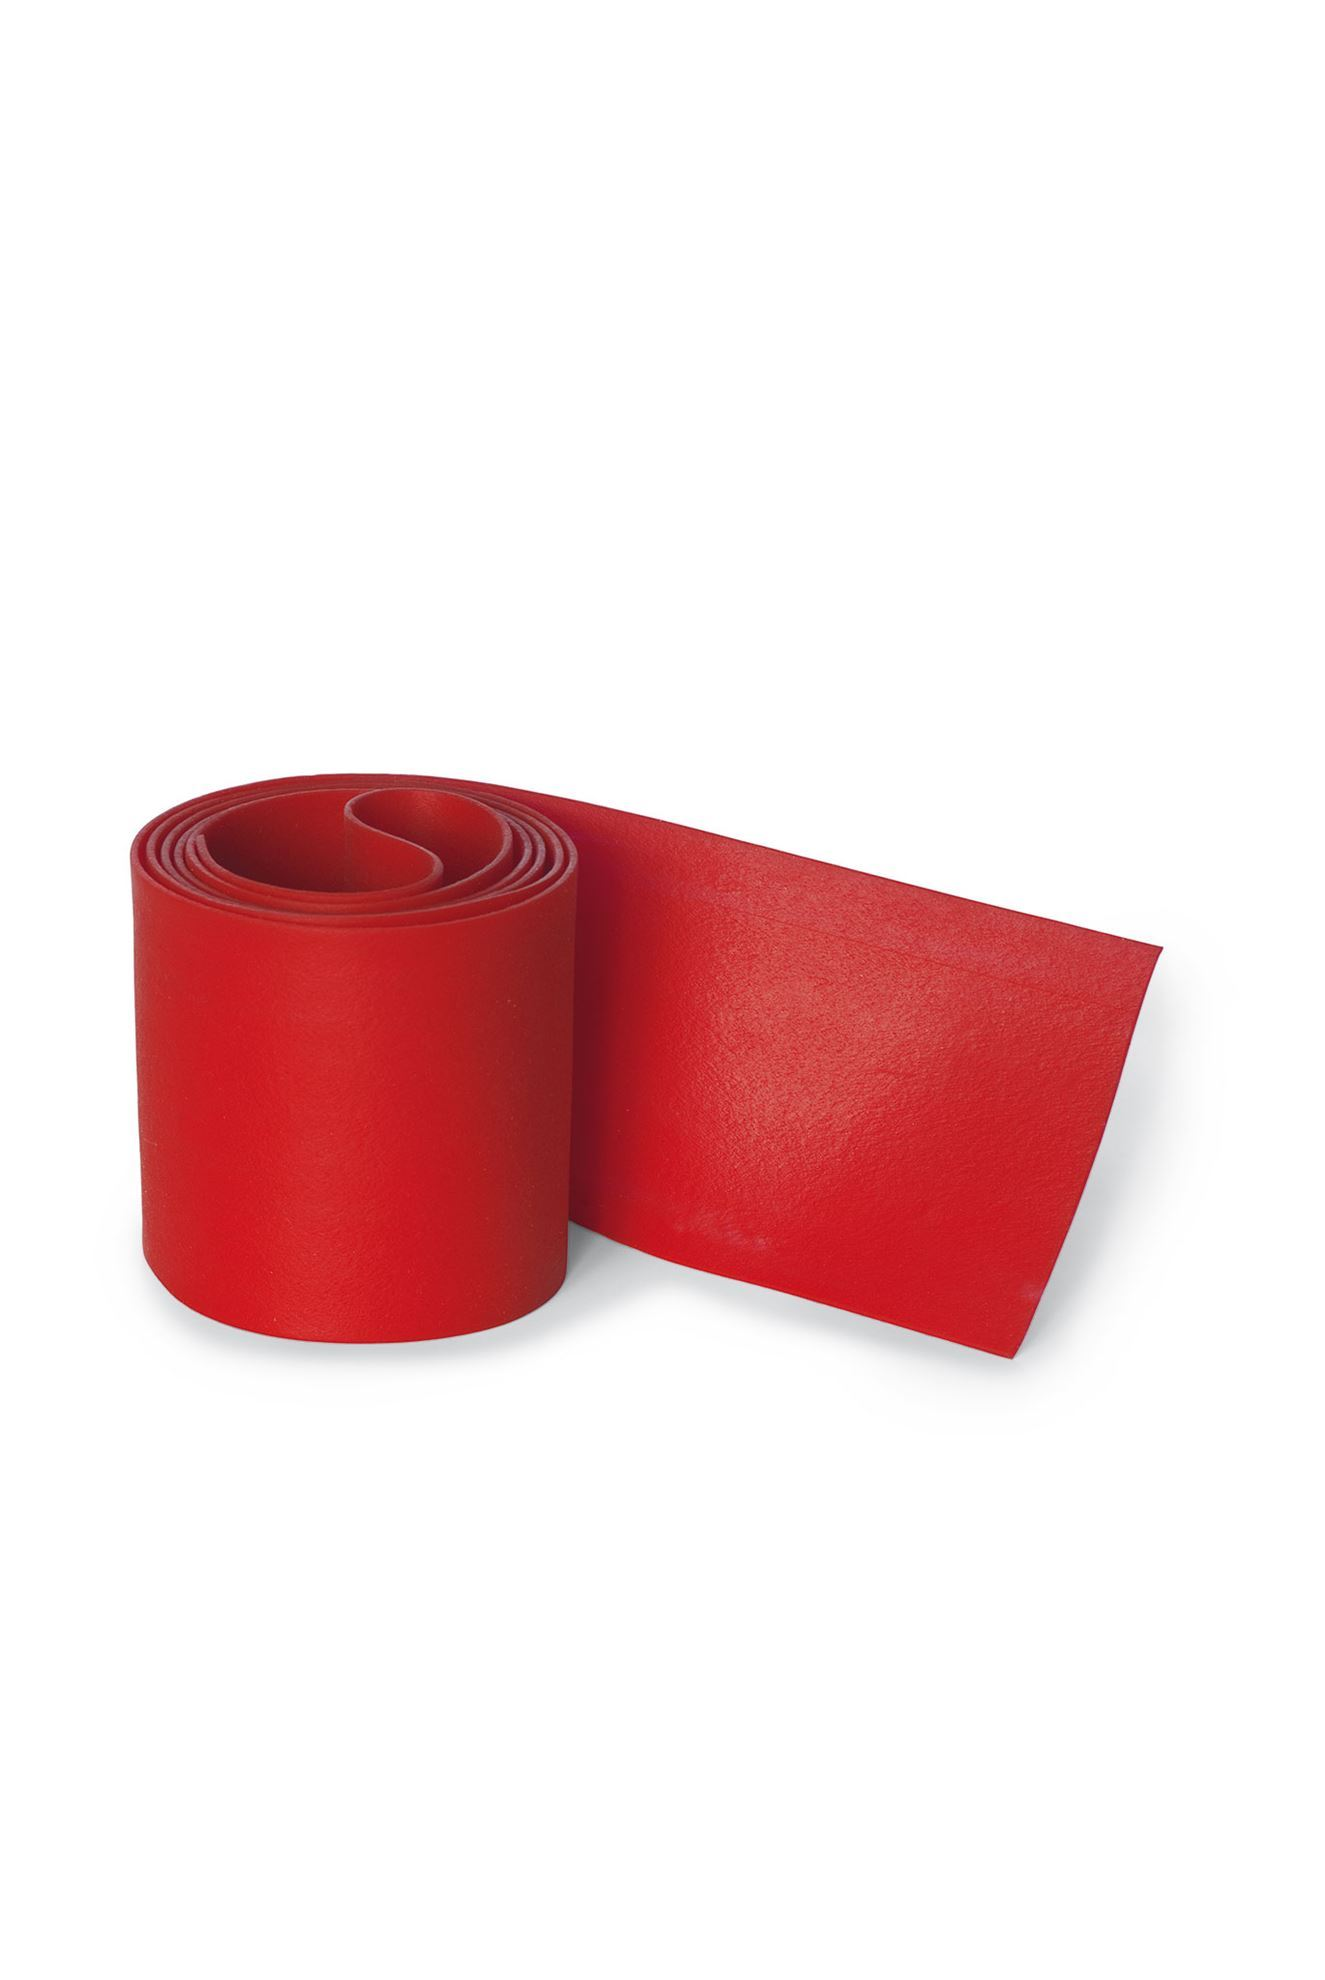 206045 - TRAINING BAND RED